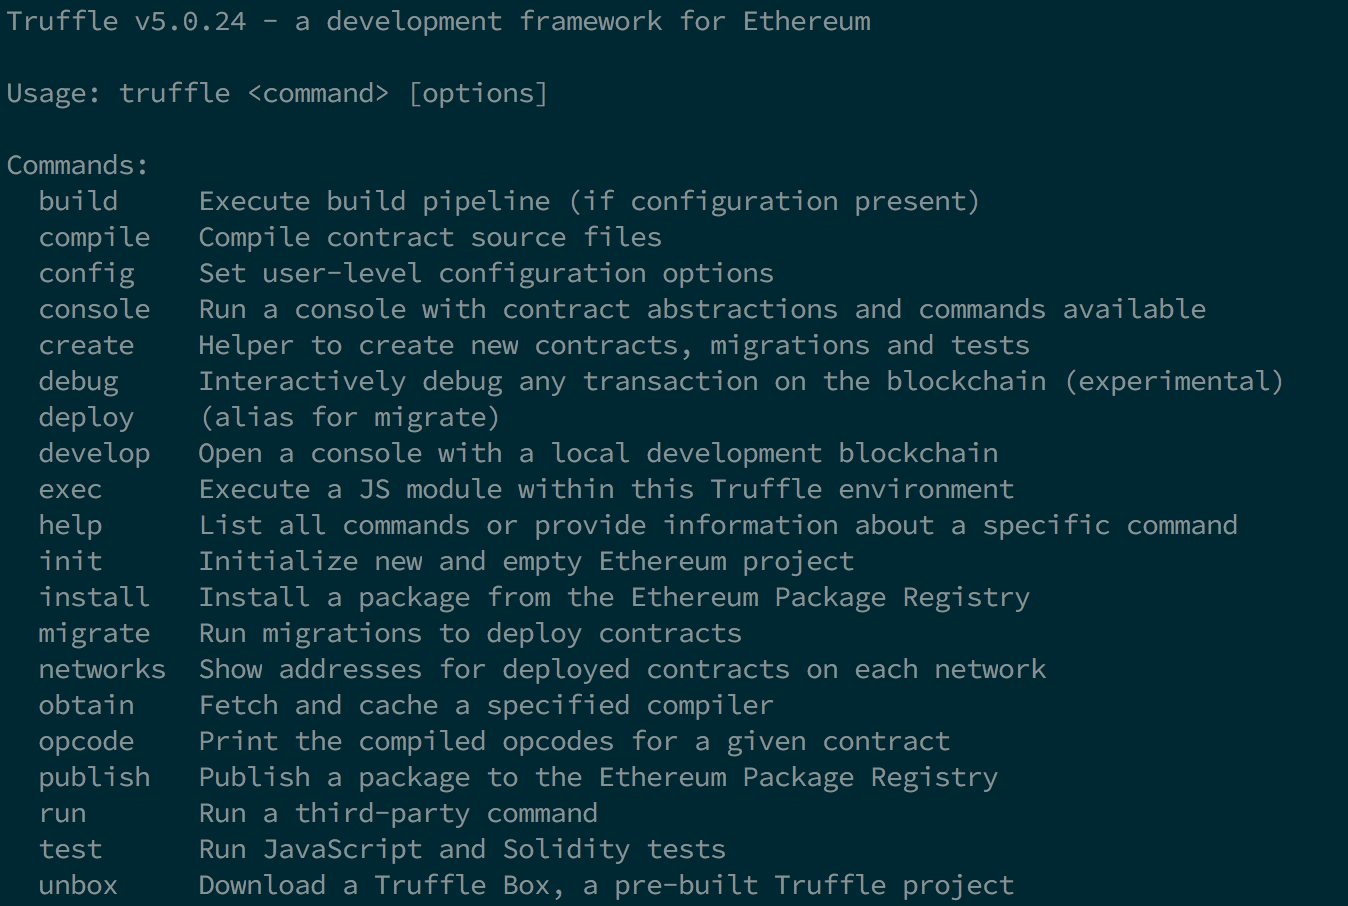 Truffle built-in commands